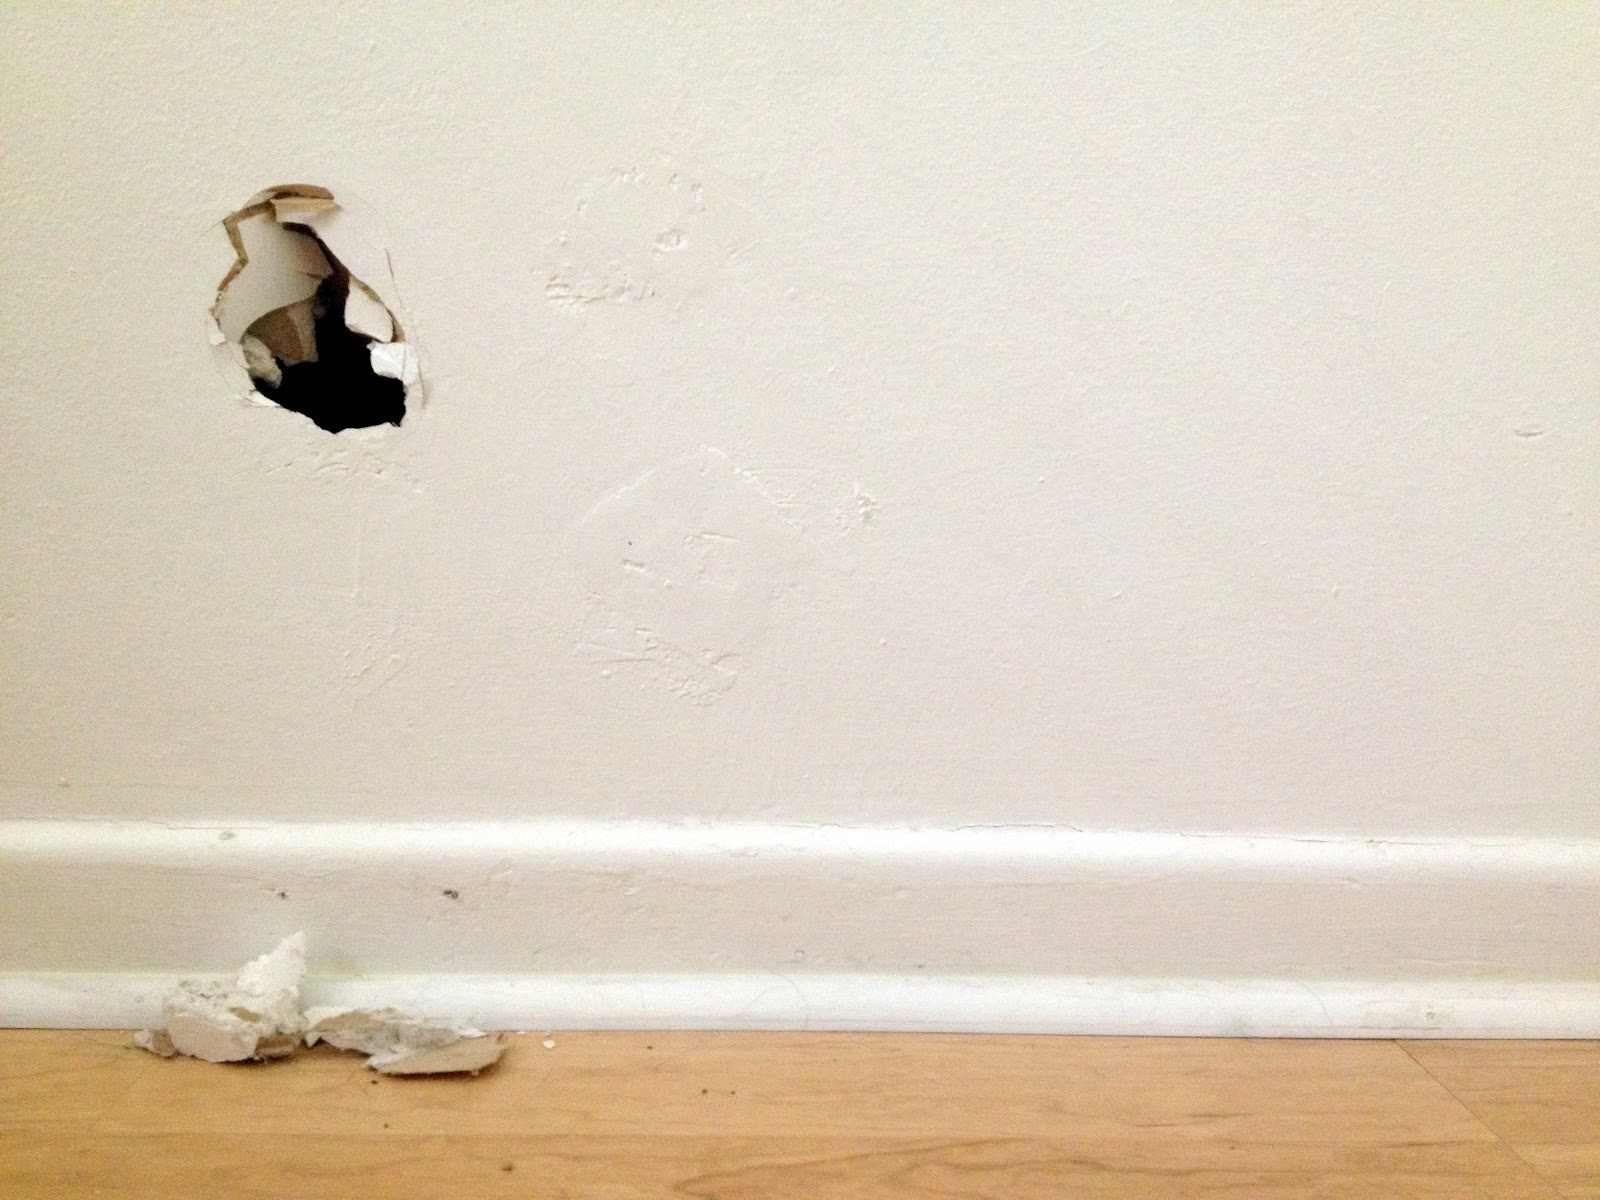 hole in drywall